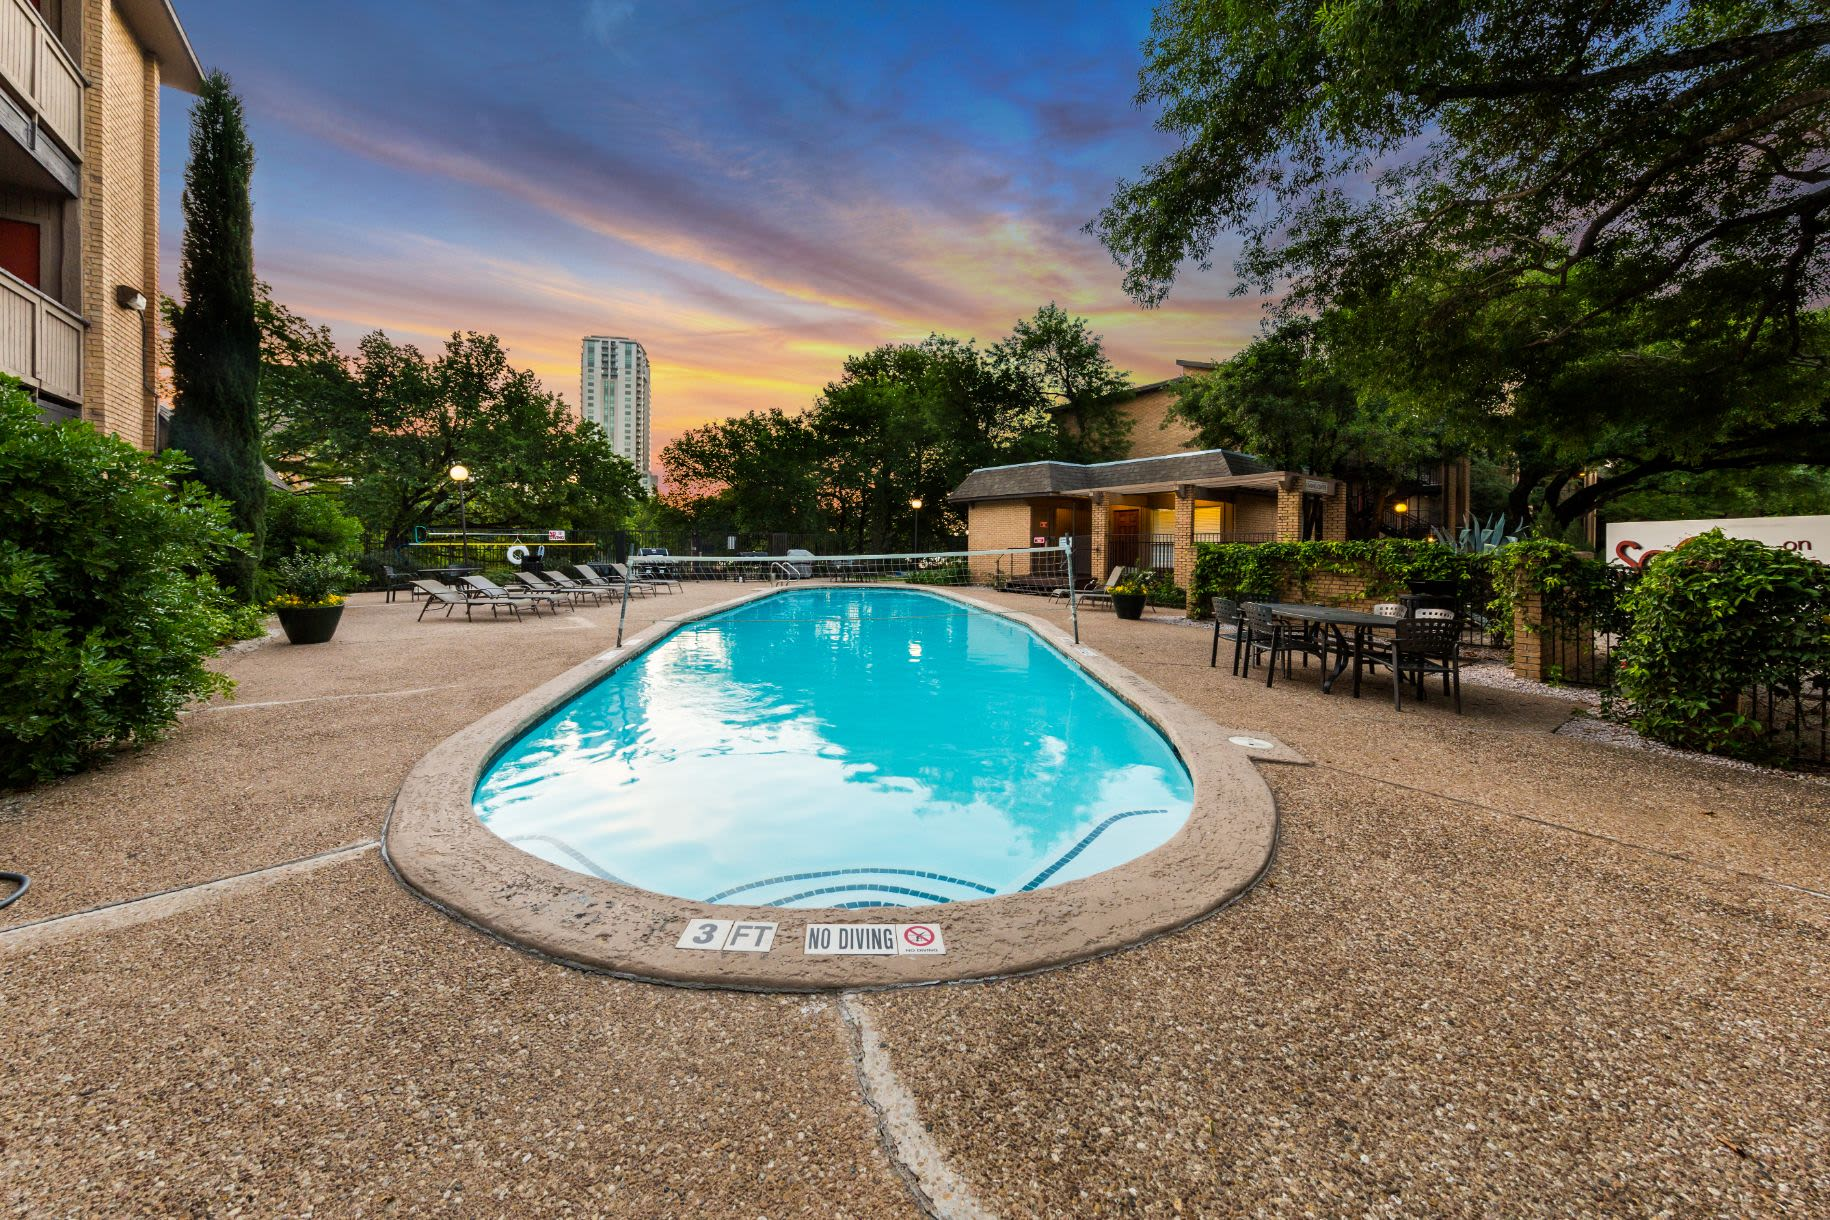 Community pool at sunset at SoCo on The Lake in Austin, Texas